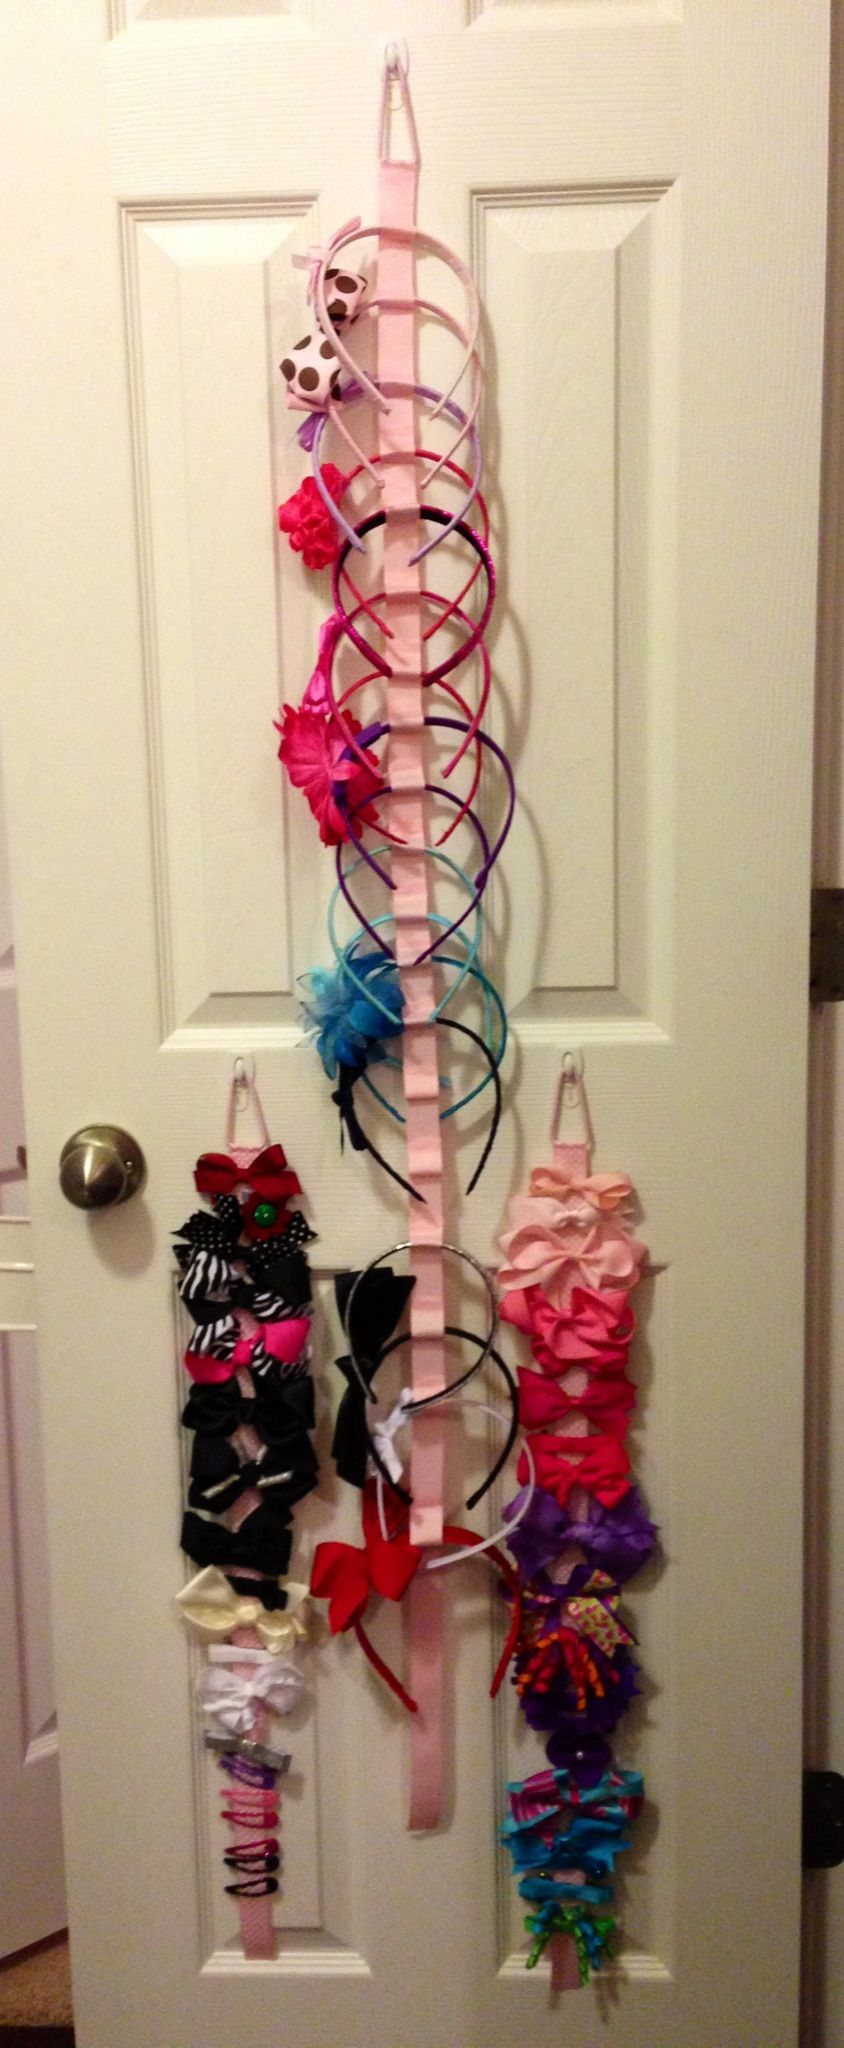 Pin By Penny Parisi On Things To Remember For Samantha S B Day Organizing Hair Accessories Hair Accessories Holder Hair Accessories Clips